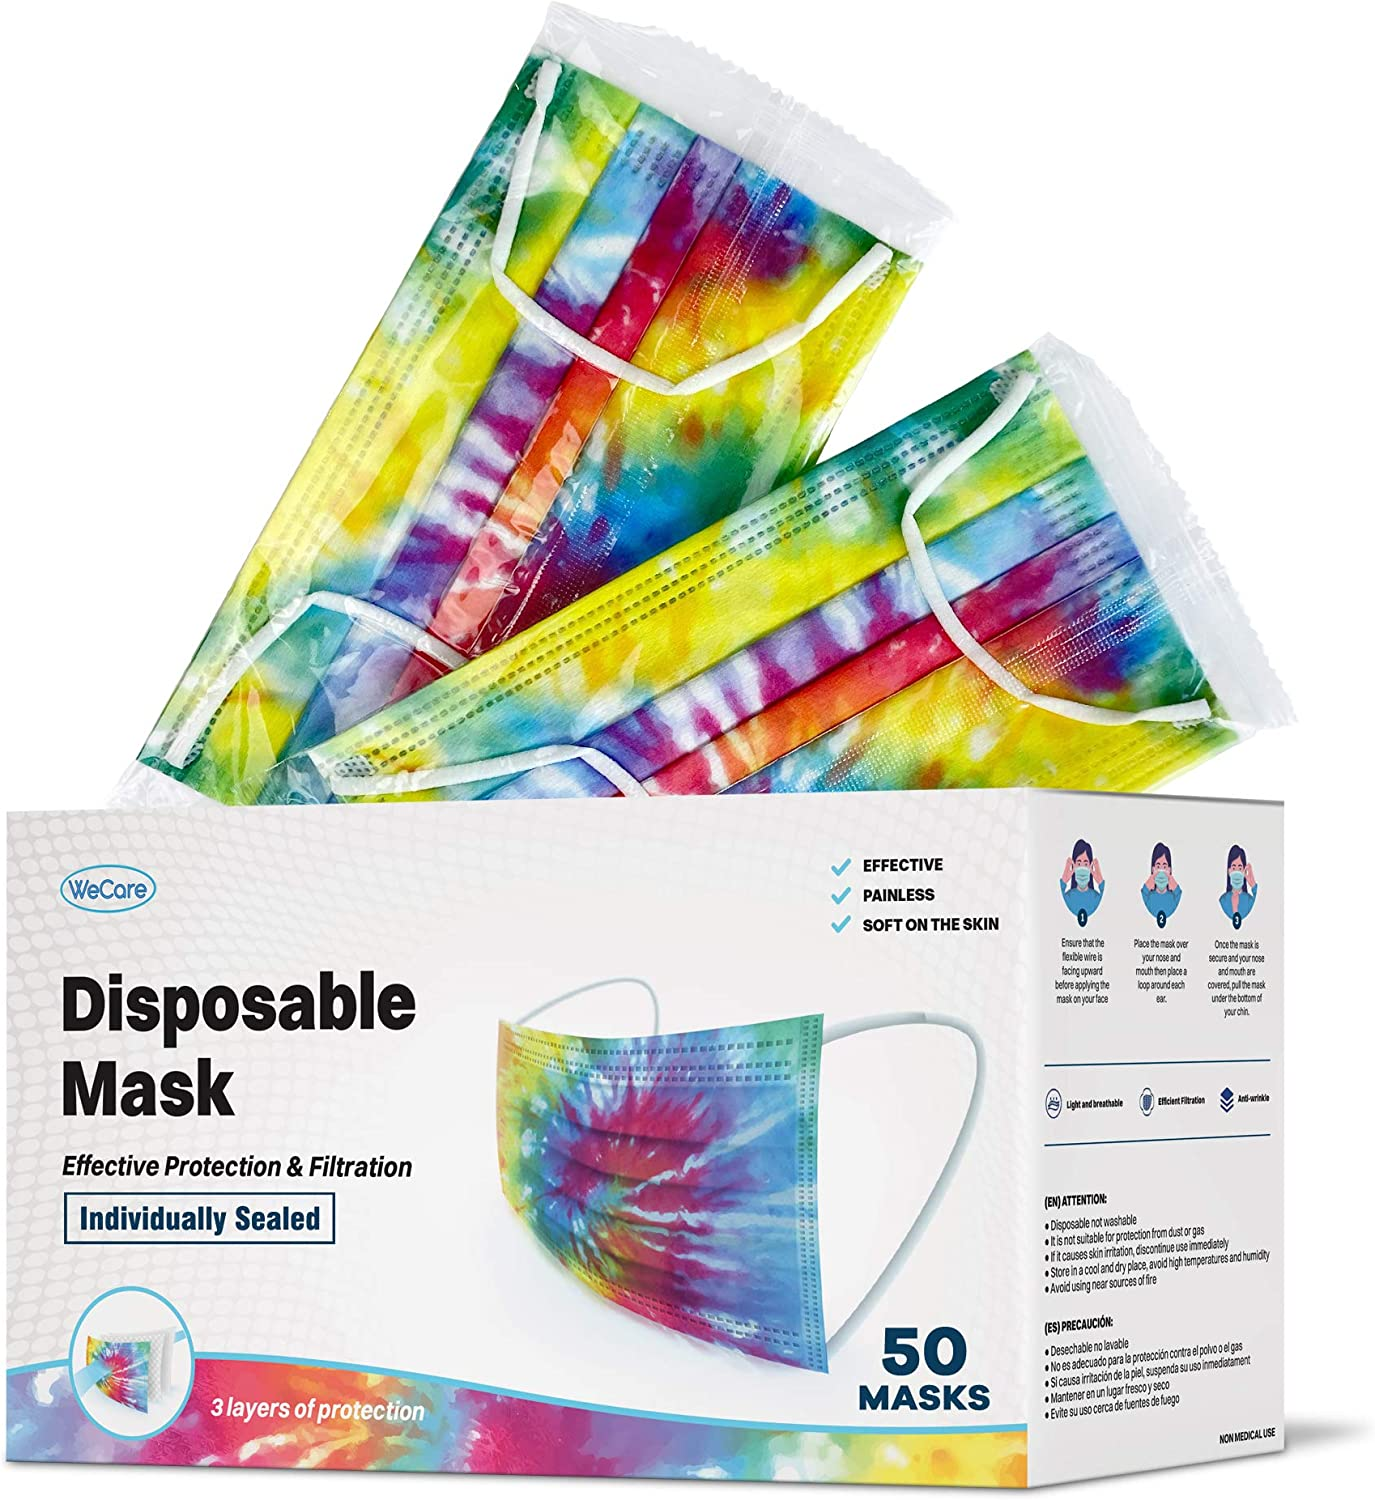 WeCare Disposable Face Mask Individually Wrapped - 50 Pack, Tie Dye Masks